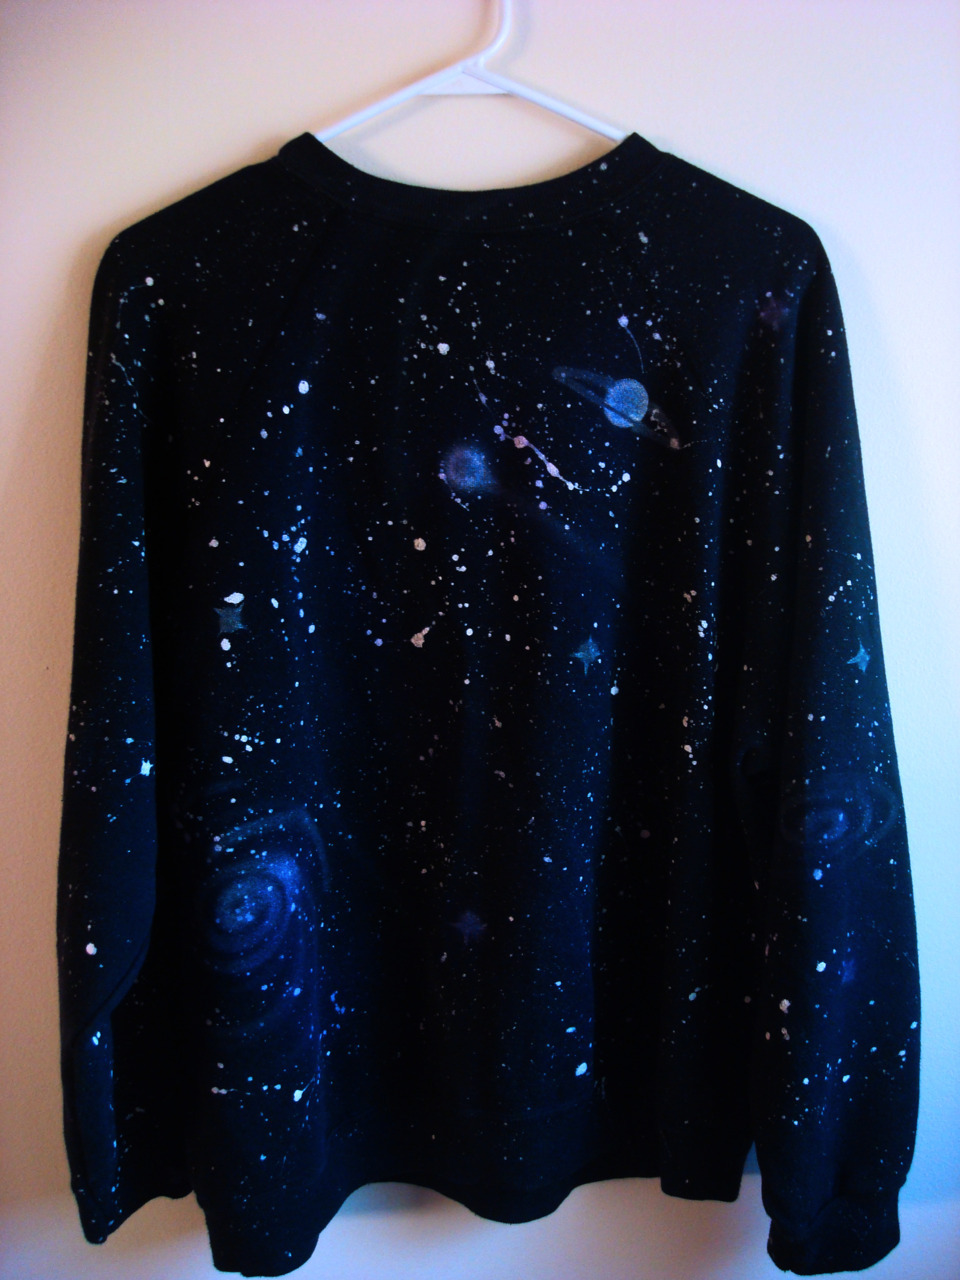 spacecraft clothing - photo #13